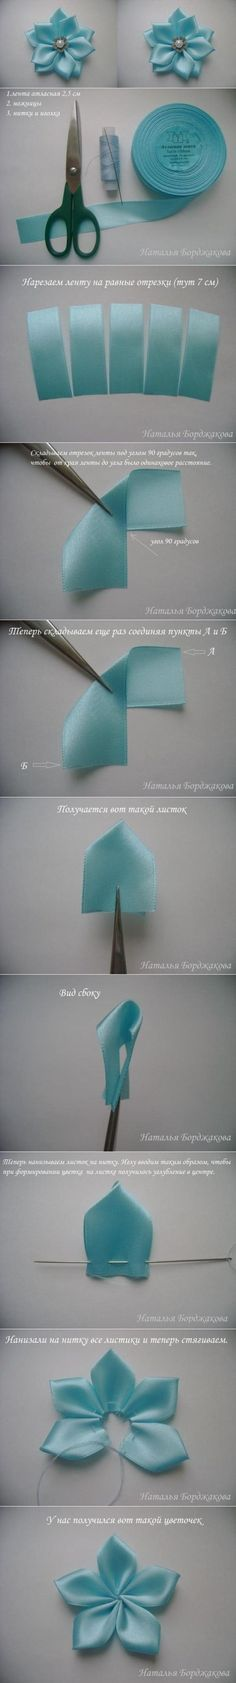 DIY Pointed Petals Ribbon Flower DIY Pointed Petals Ribbon Flower by catrulz Visit,Like and Shop our Facebook page https://www.facebook.com/RusticFarmhouseDecor